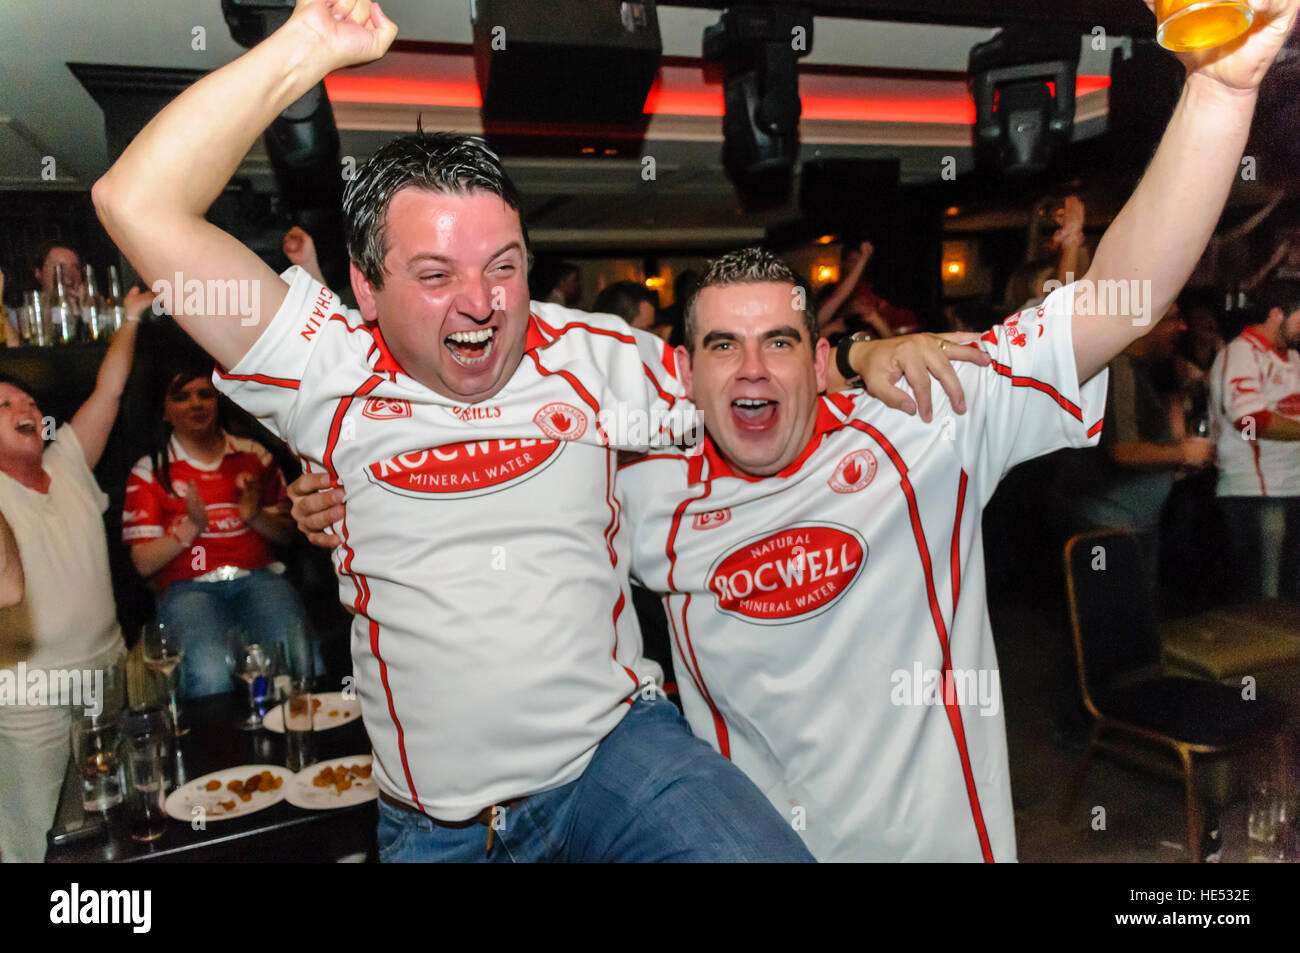 People in Cookstown celebrate County Tyrone (Tir Eoghan) winning the All Ireland Gaelic Football championship. 21 - Stock Image